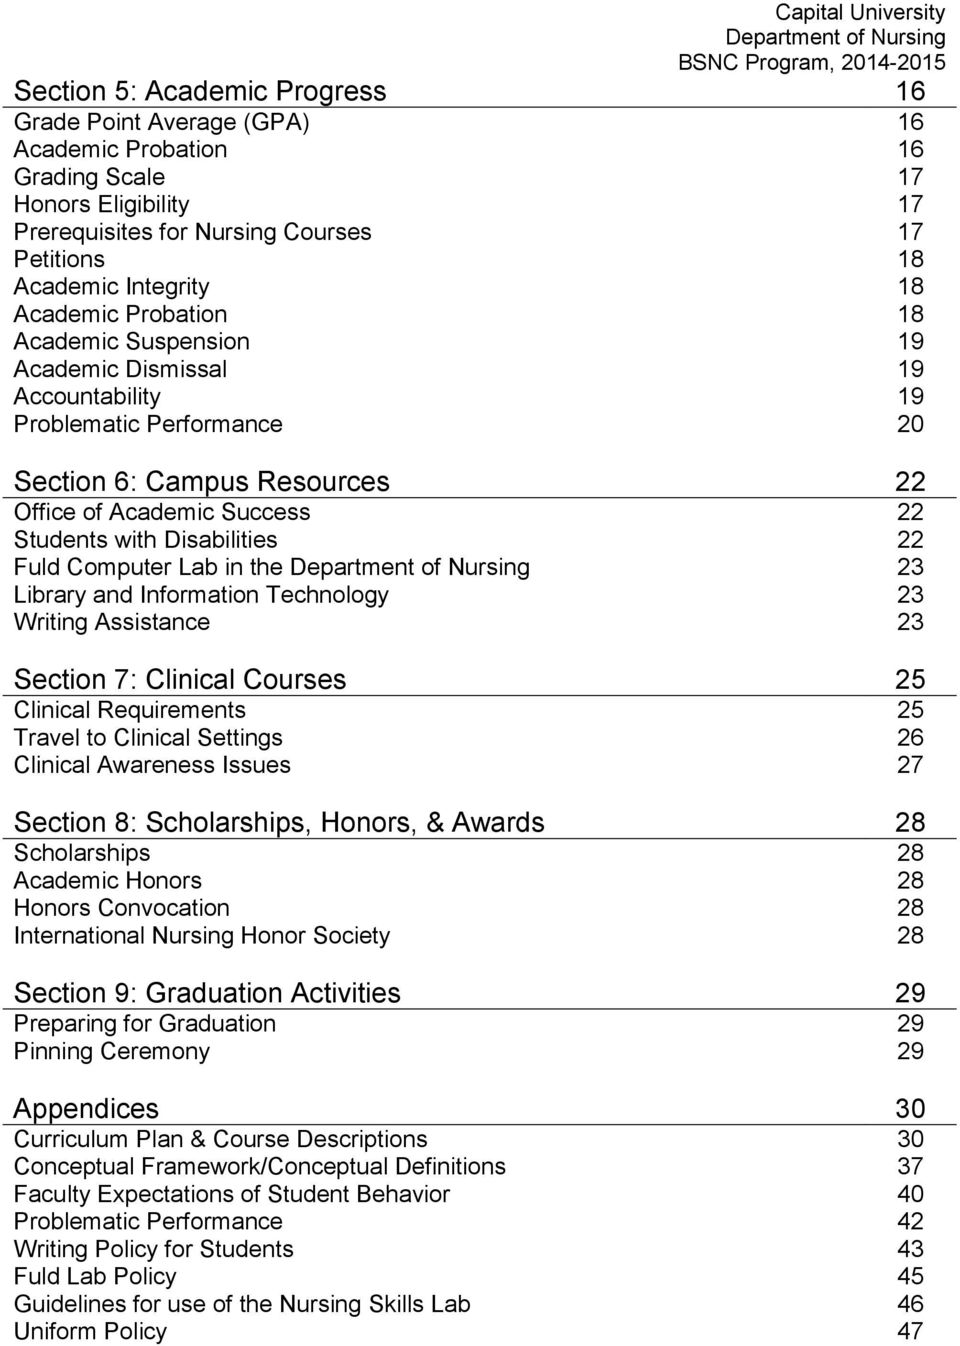 22 Fuld Computer Lab in the 23 Library and Information Technology 23 Writing Assistance 23 Section 7: Clinical Courses 25 Clinical Requirements 25 Travel to Clinical Settings 26 Clinical Awareness